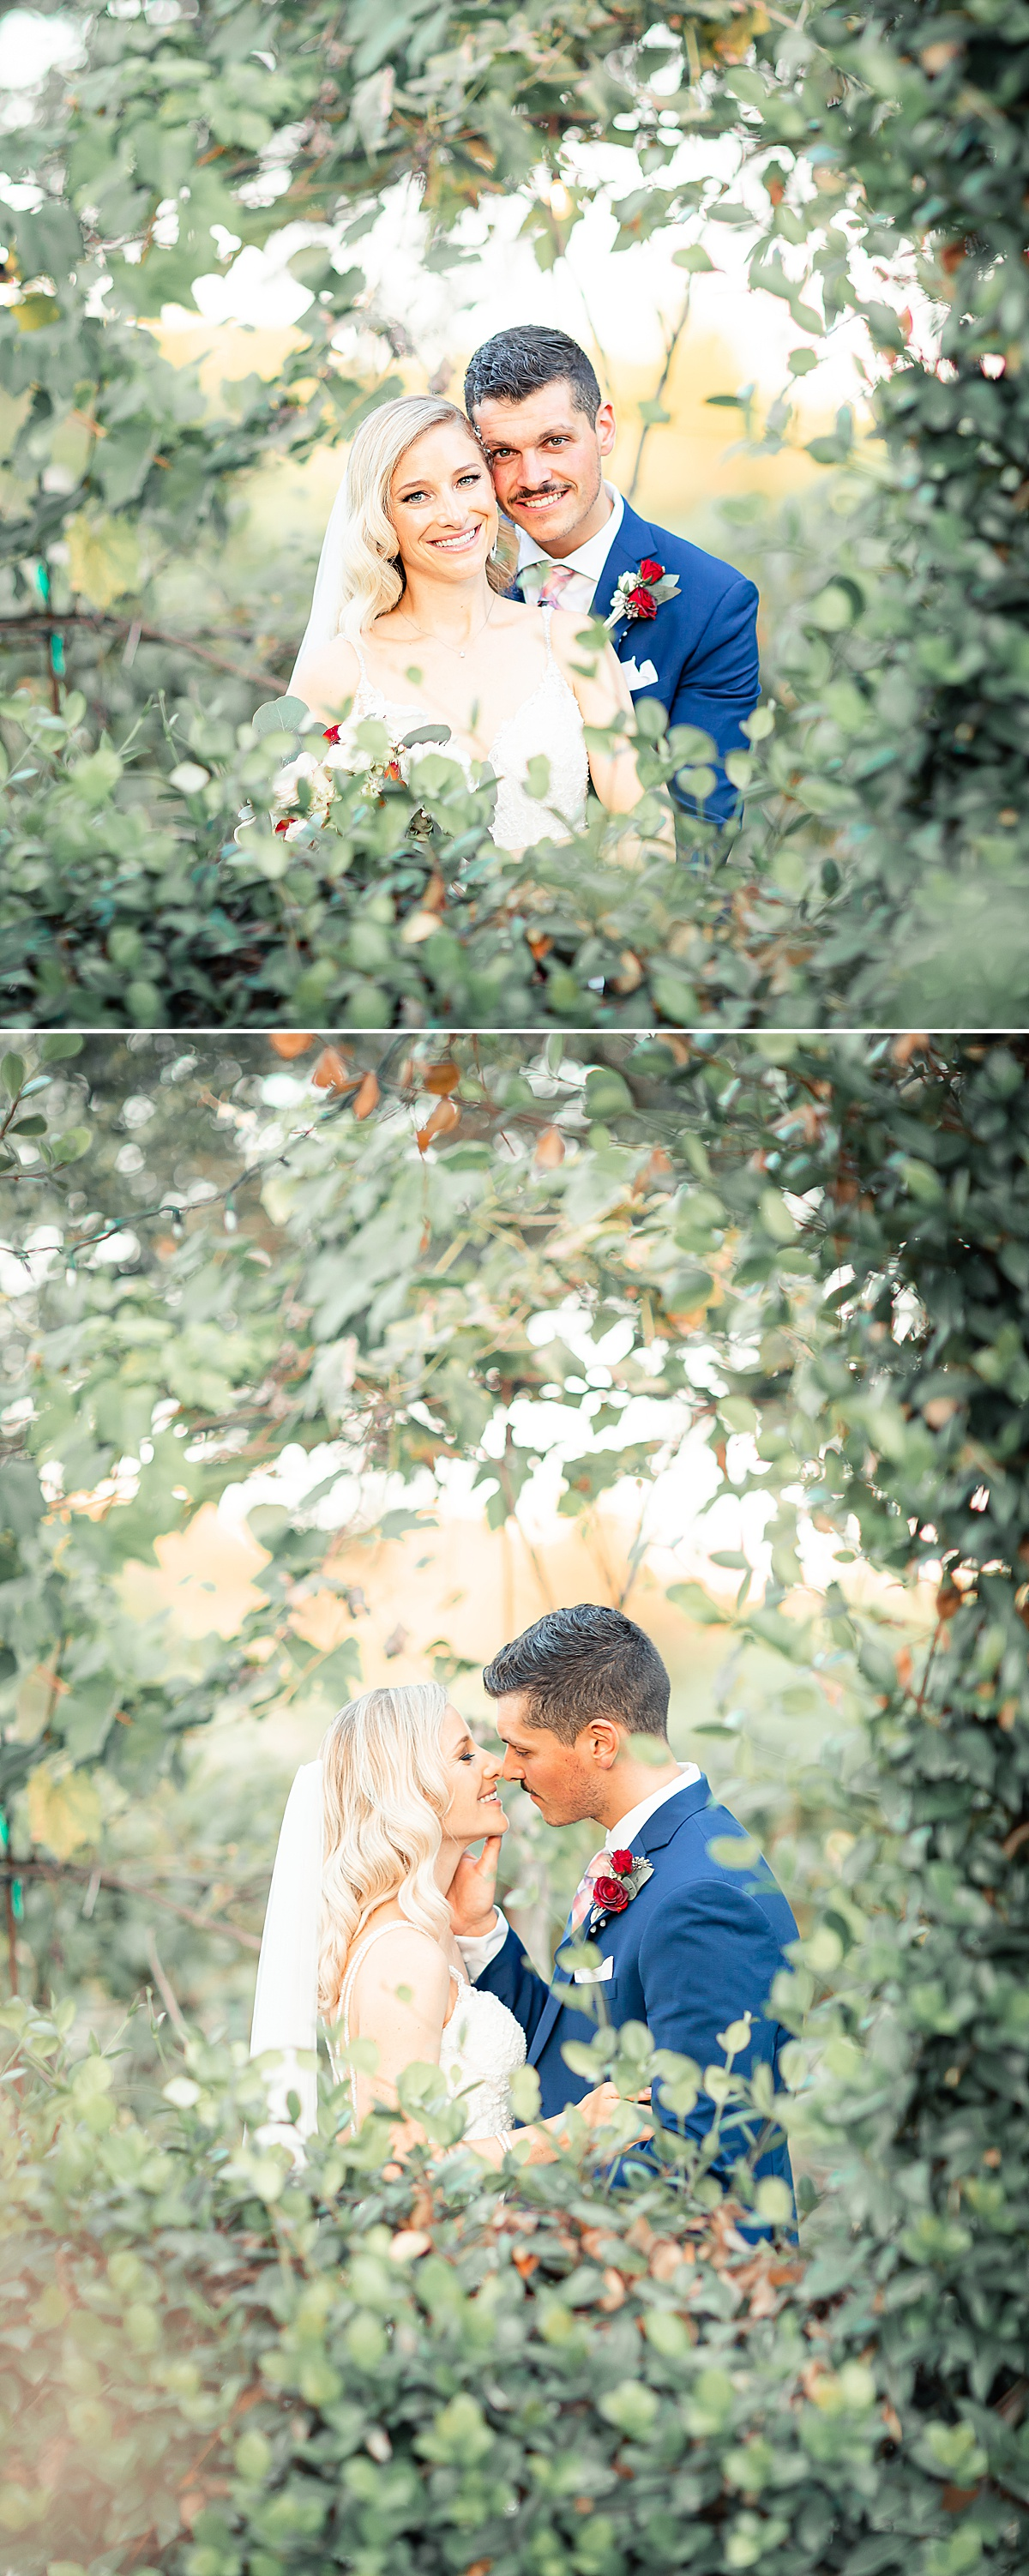 Navy-Burgundy-Blush-Texas-Wedding-Oak-Valley-Vineyards-New-Braunfels-Carly-Barton-Photography_0063.jpg